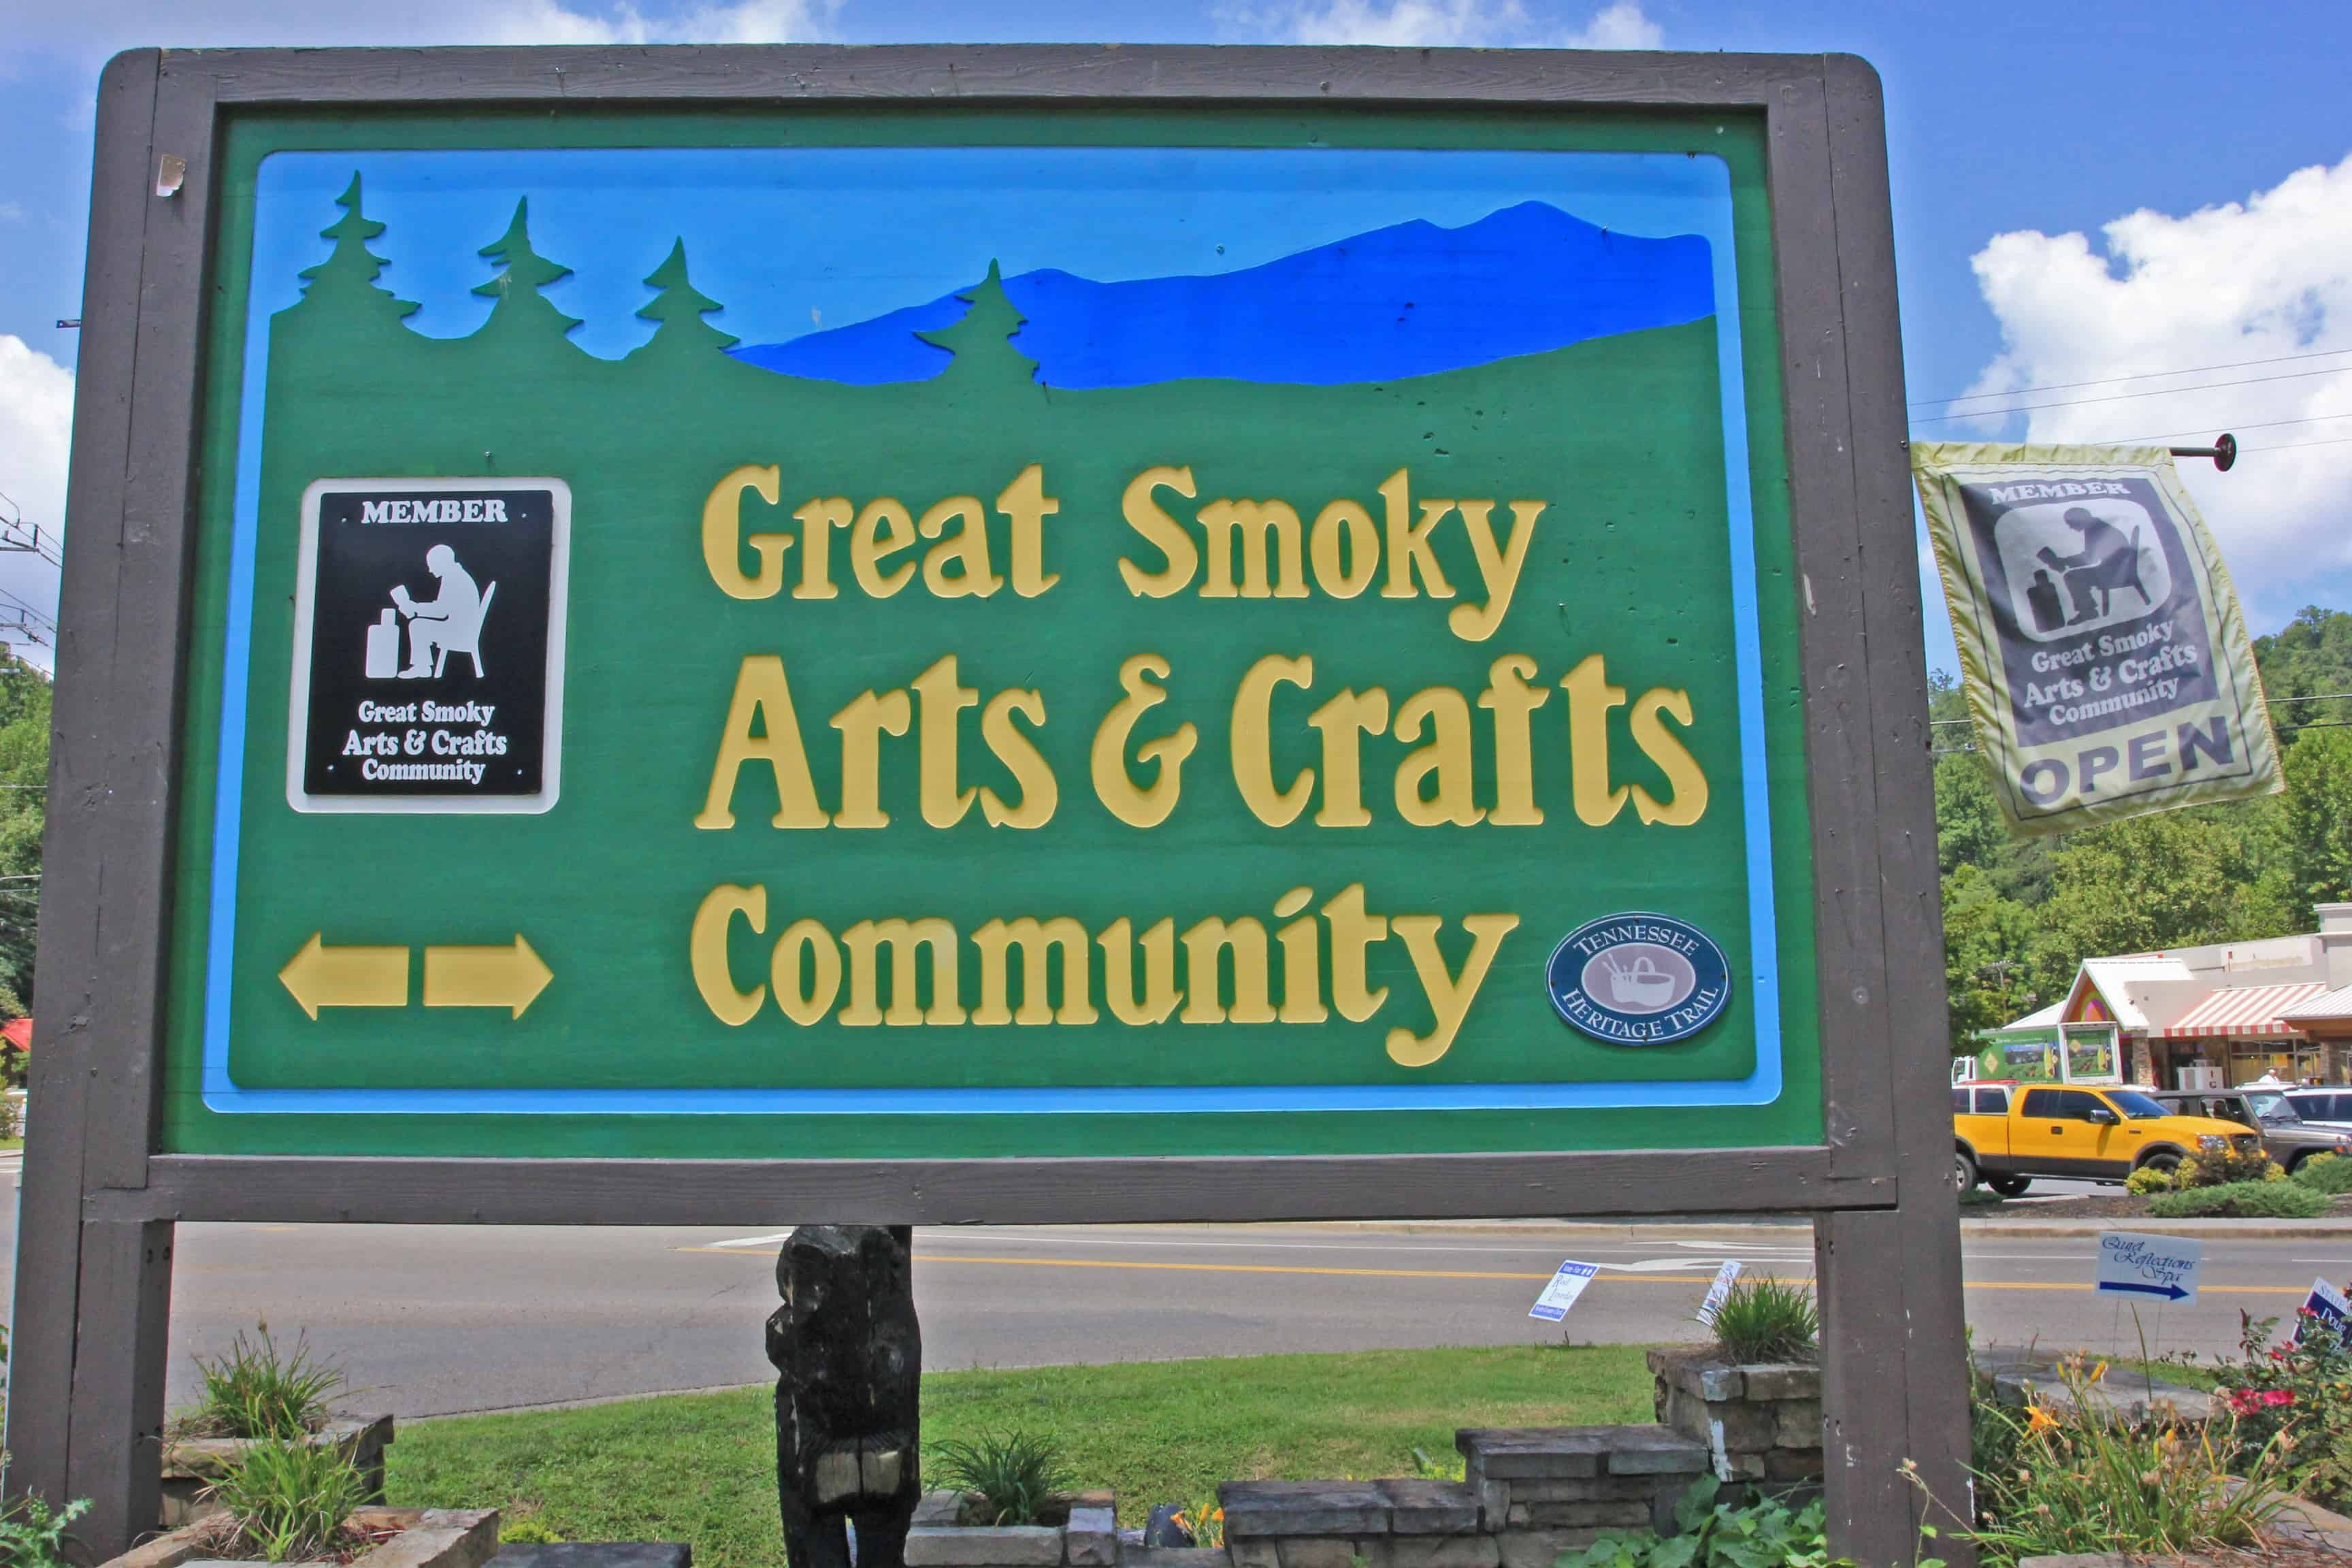 Arts and Crafts Community sign